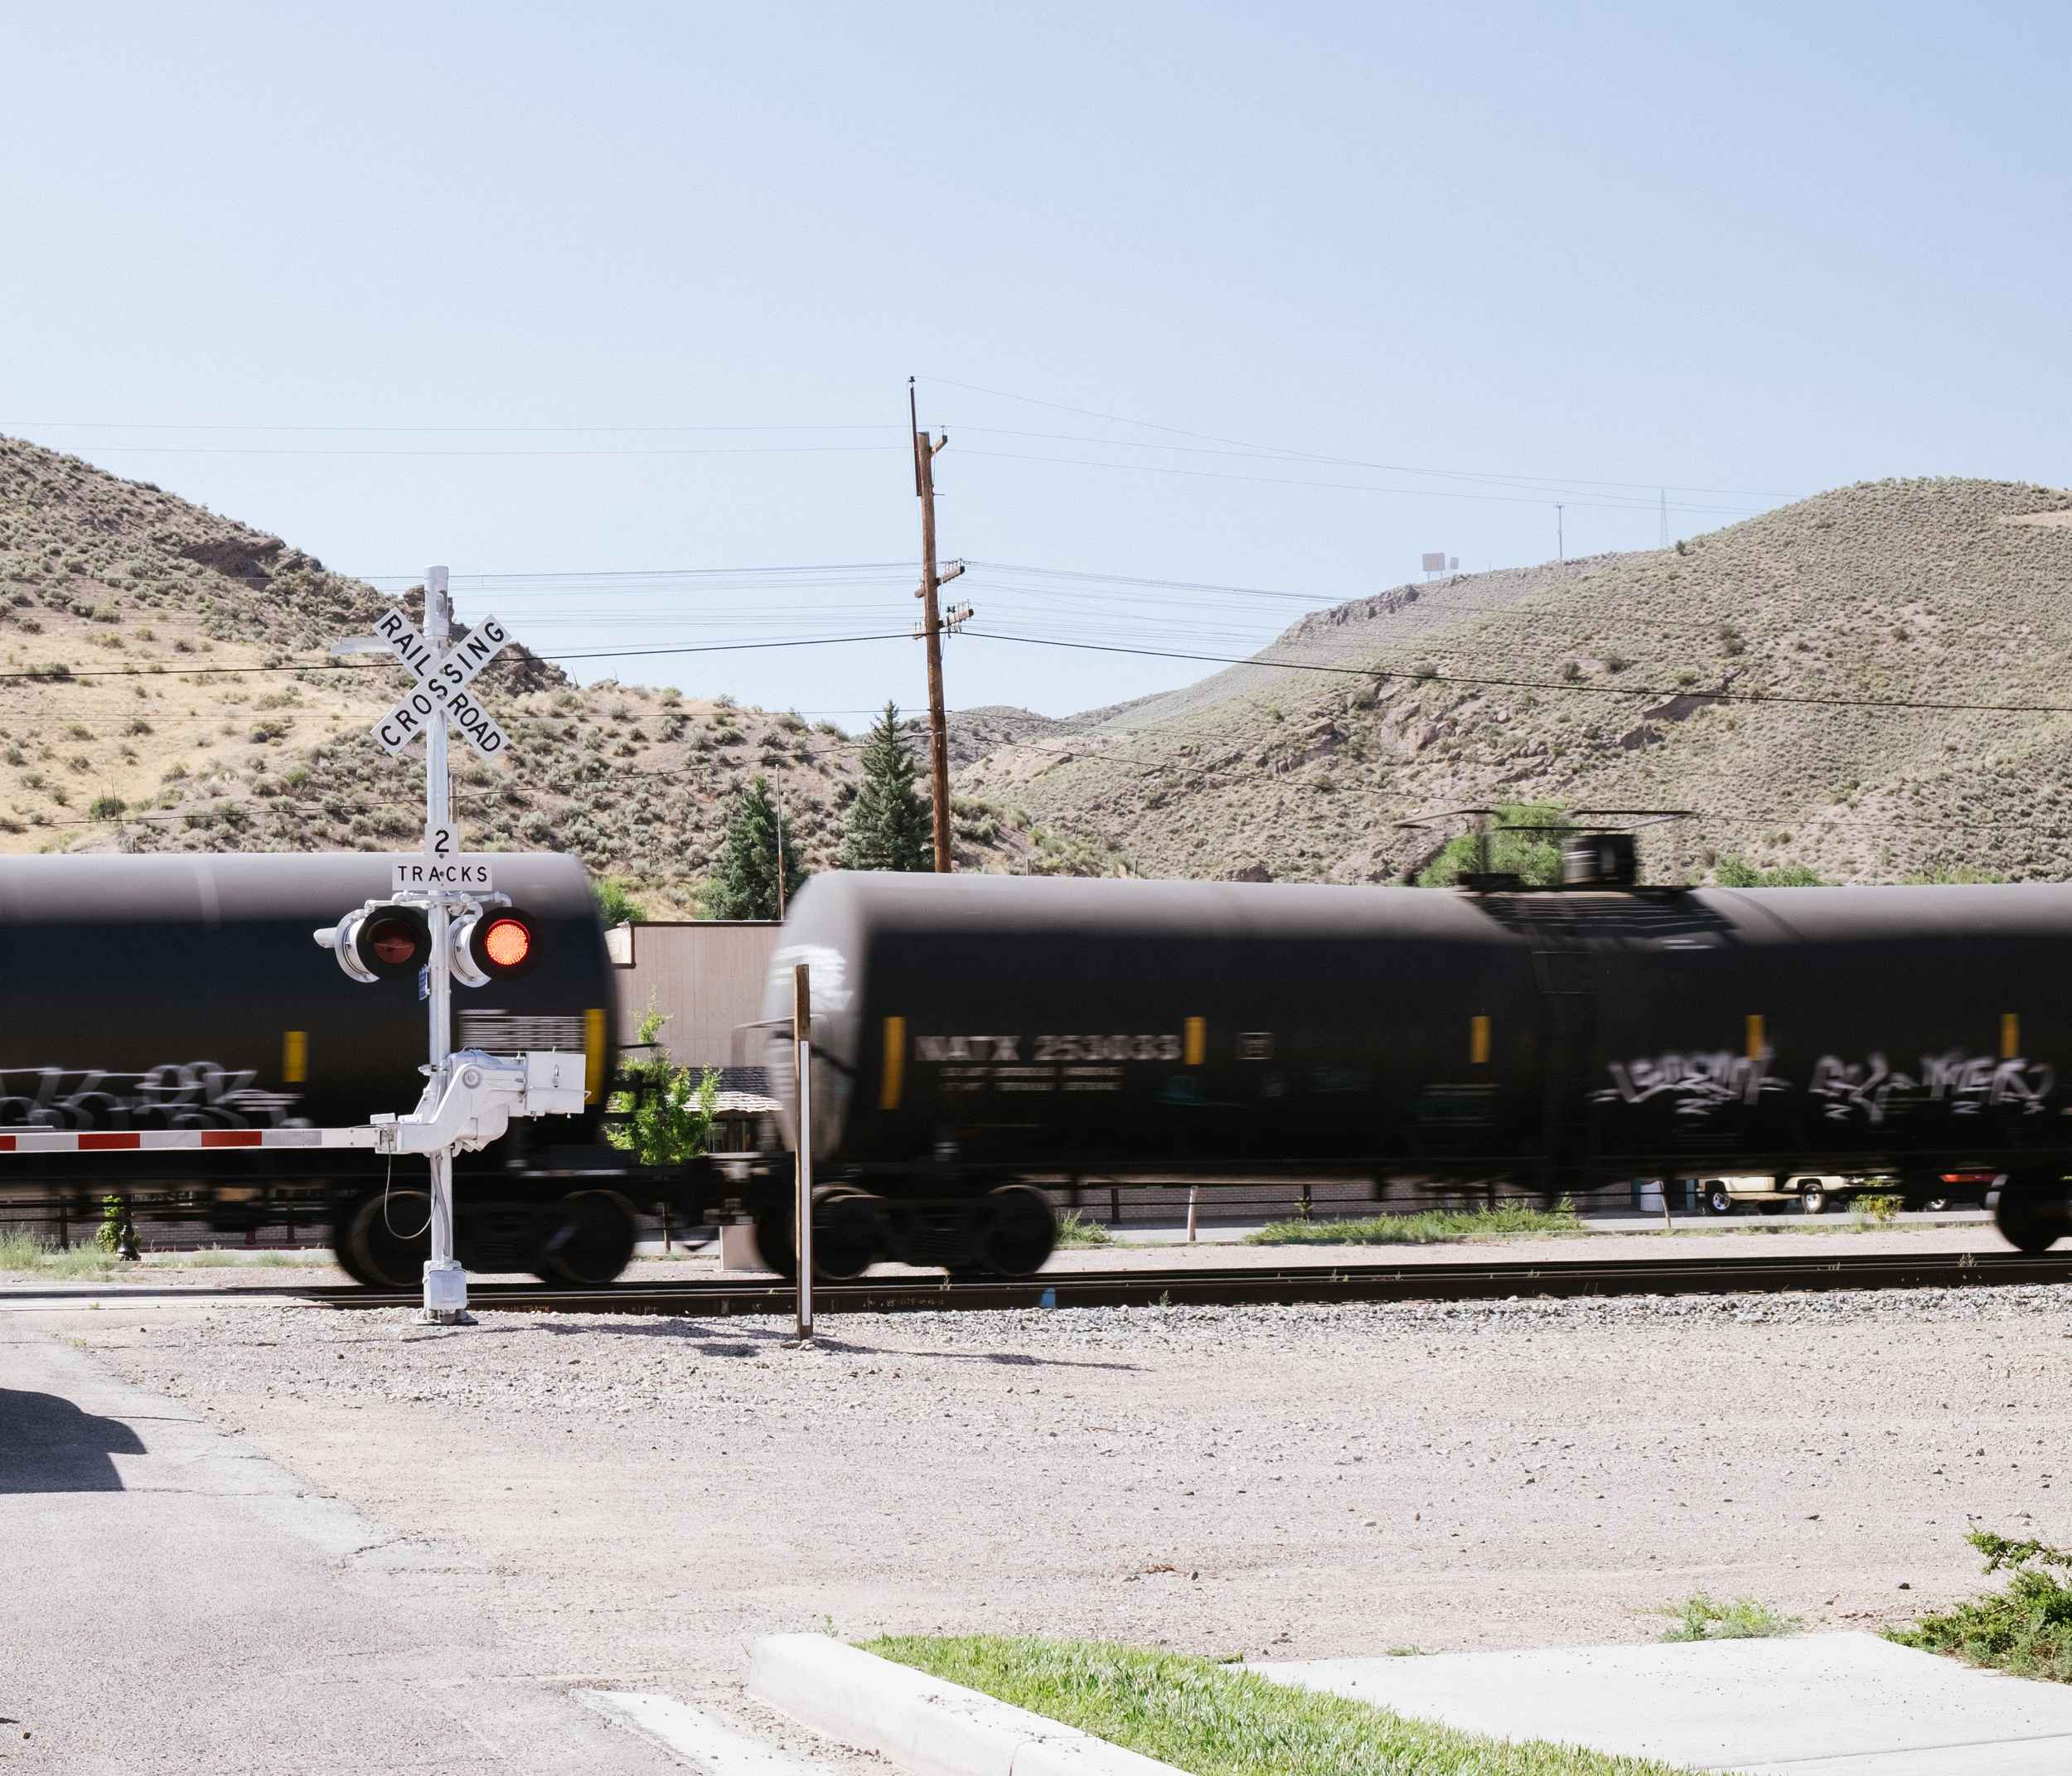 A train passes by Caliente without so much as a stop, only halting traffic for a brief moment.